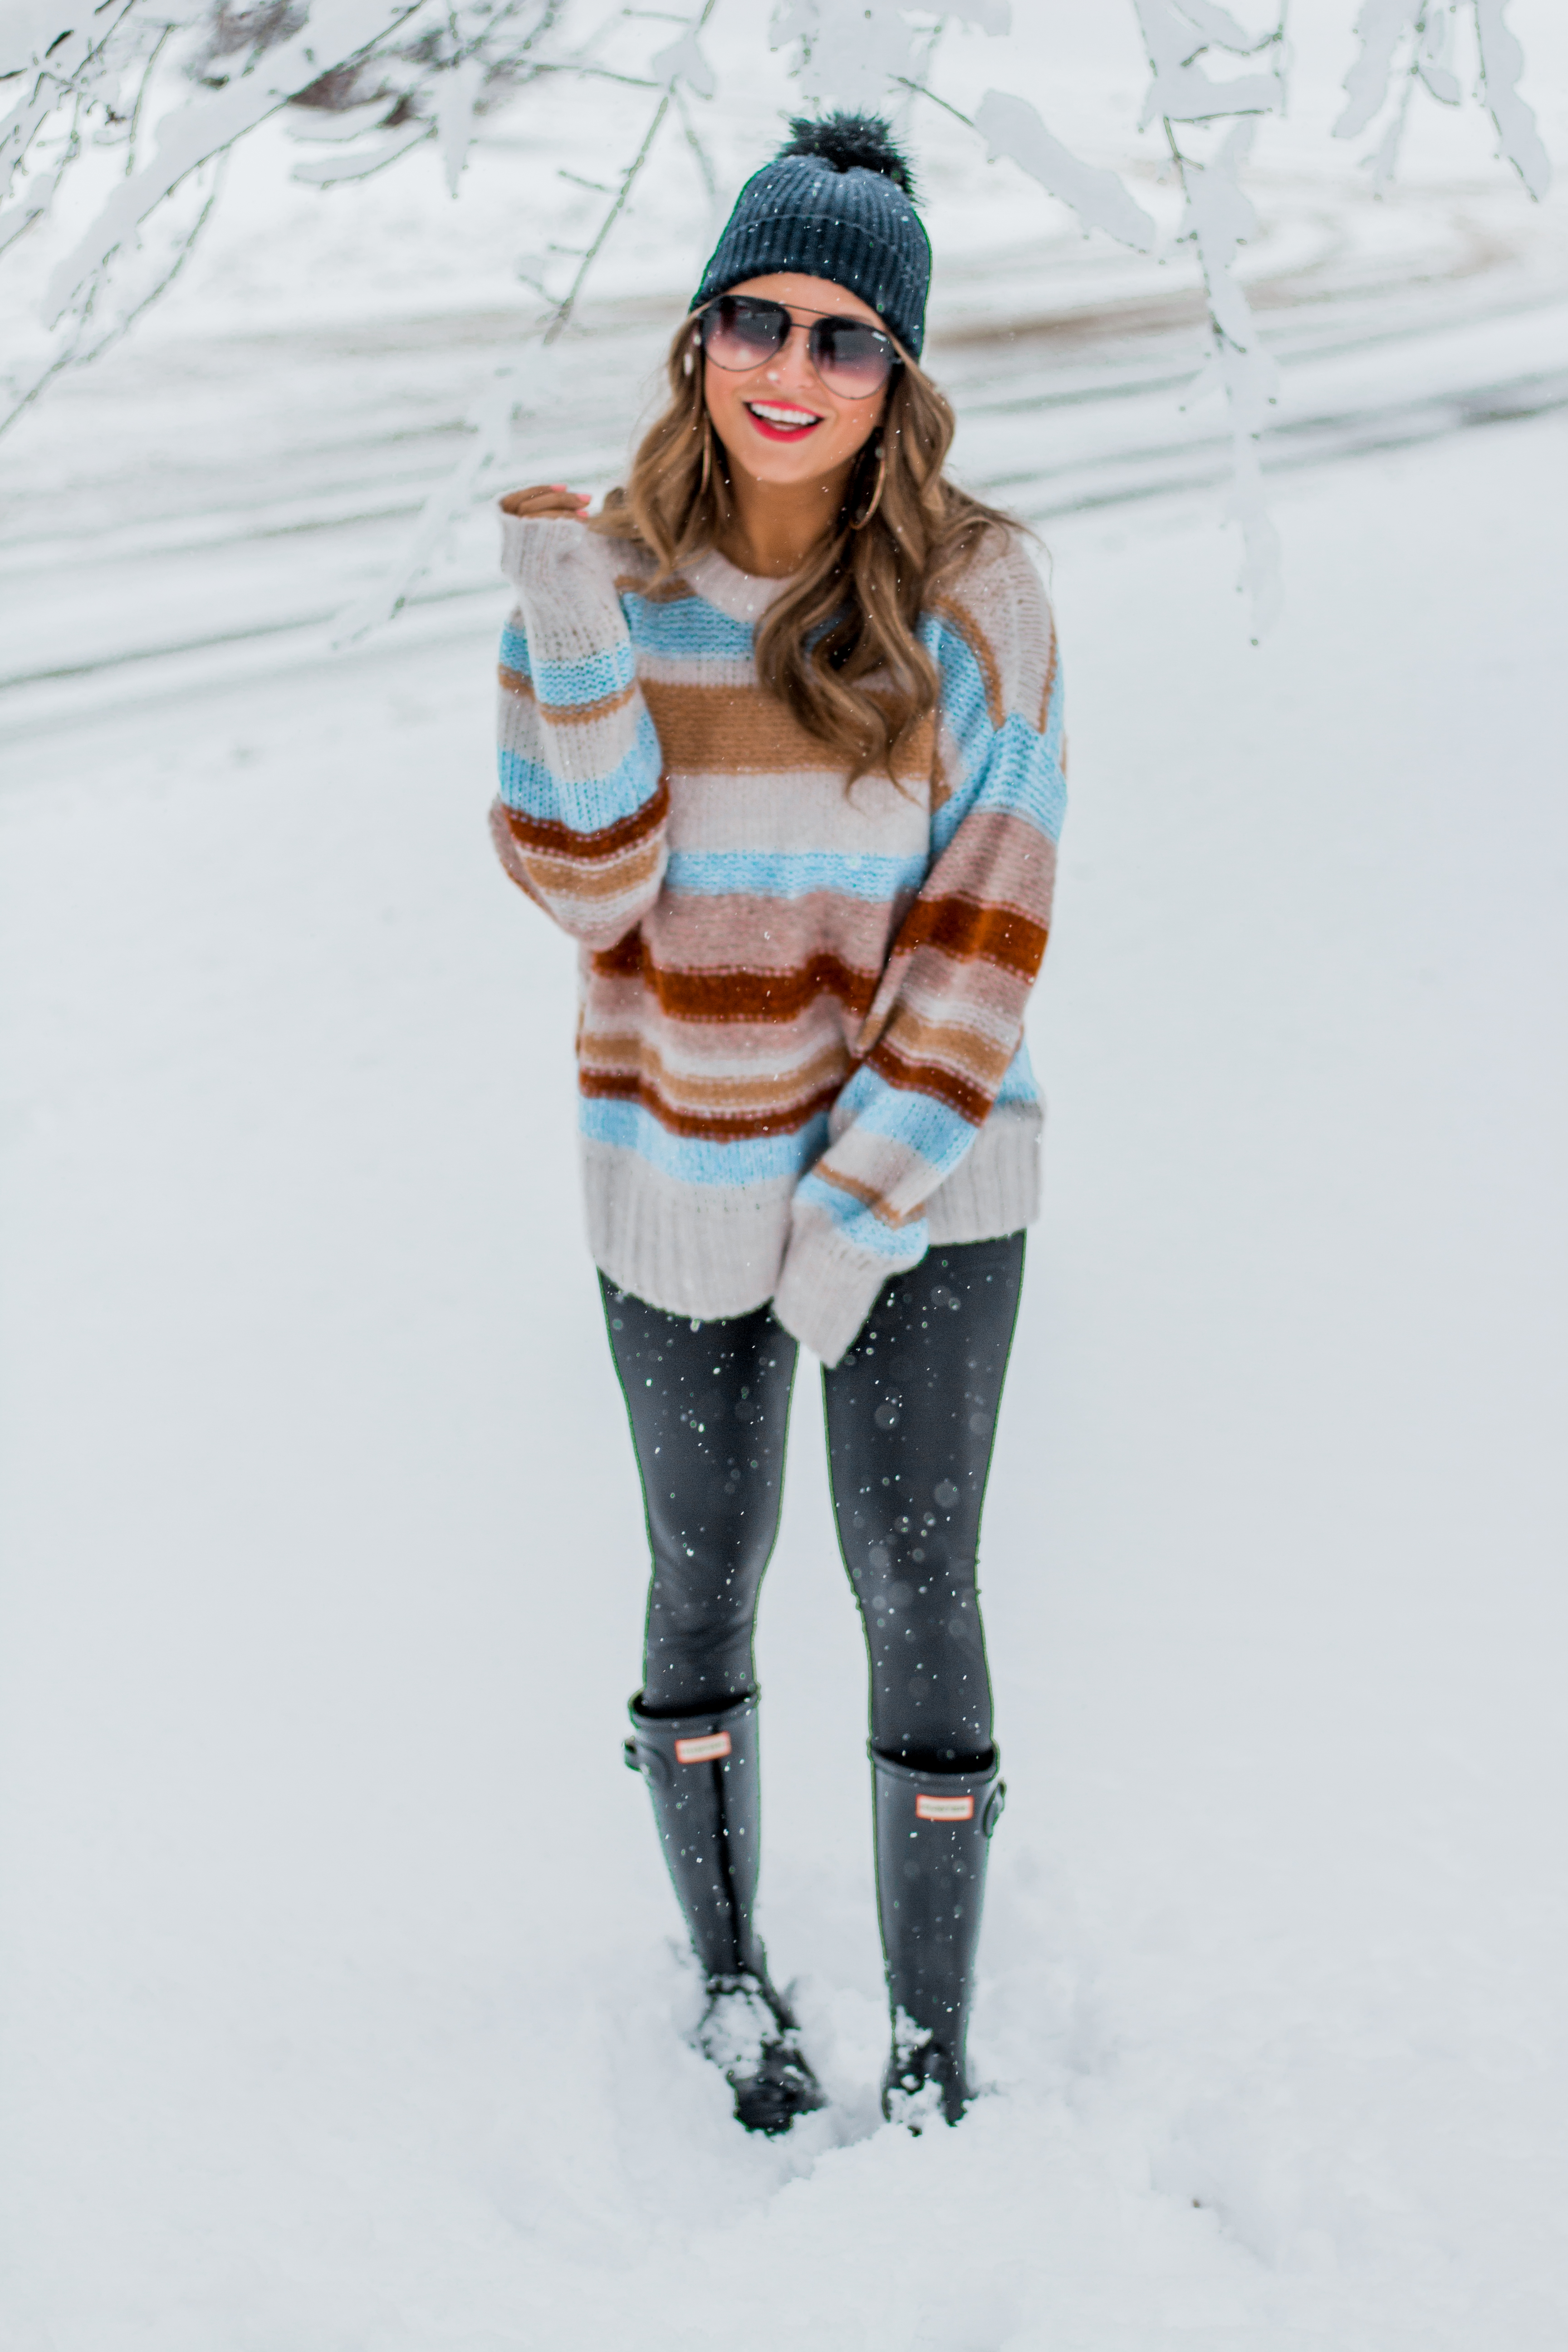 Women's Fashion - American Eagle Sweater - Hunter Boots - Beanie - Snow Day - OOTD - Fashion Blogger - Winter Fashion - 12